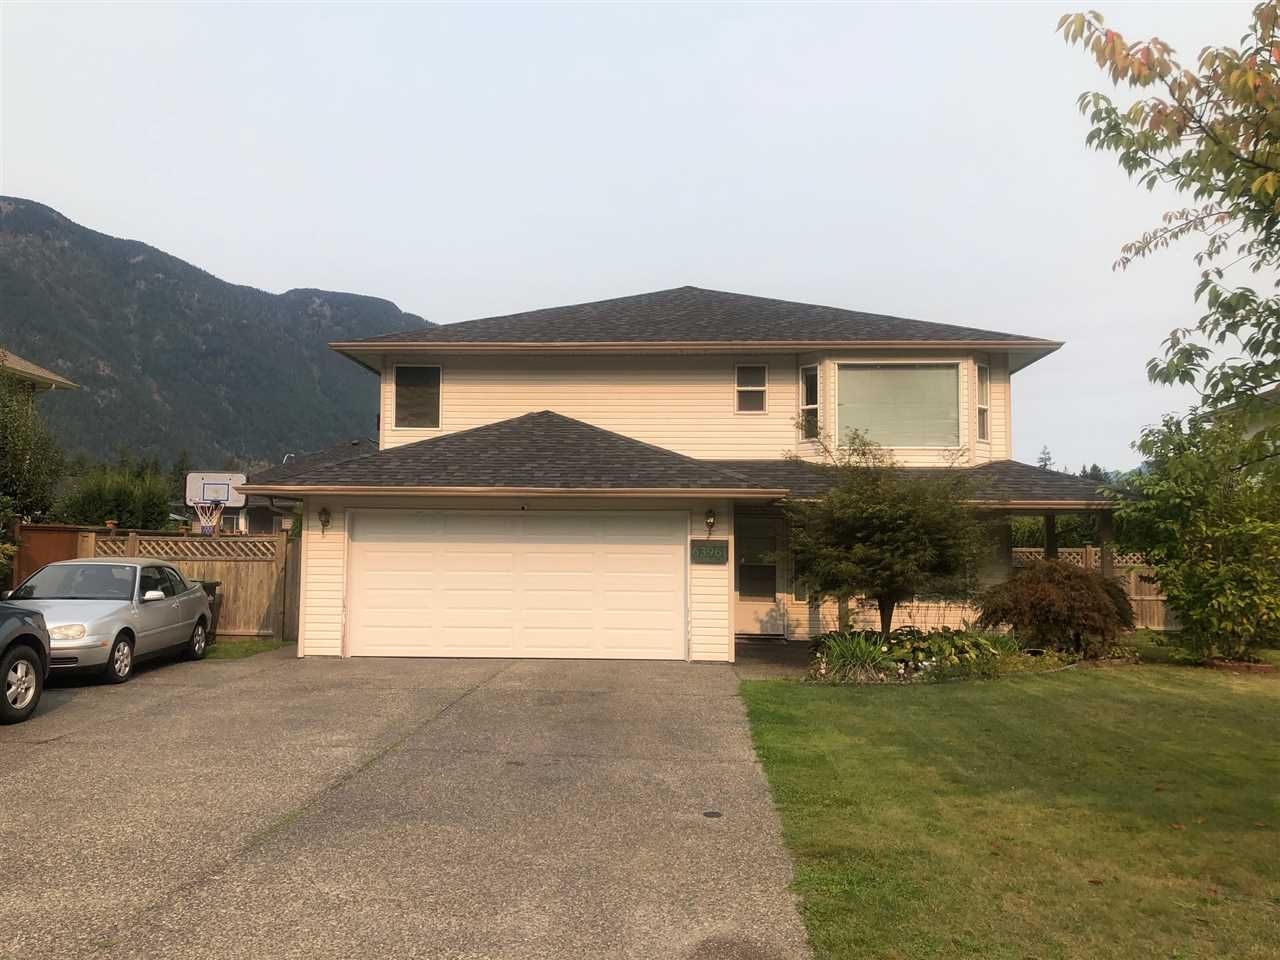 Main Photo: 63961 EDWARDS Drive in Hope: Hope Silver Creek House for sale : MLS®# R2502616